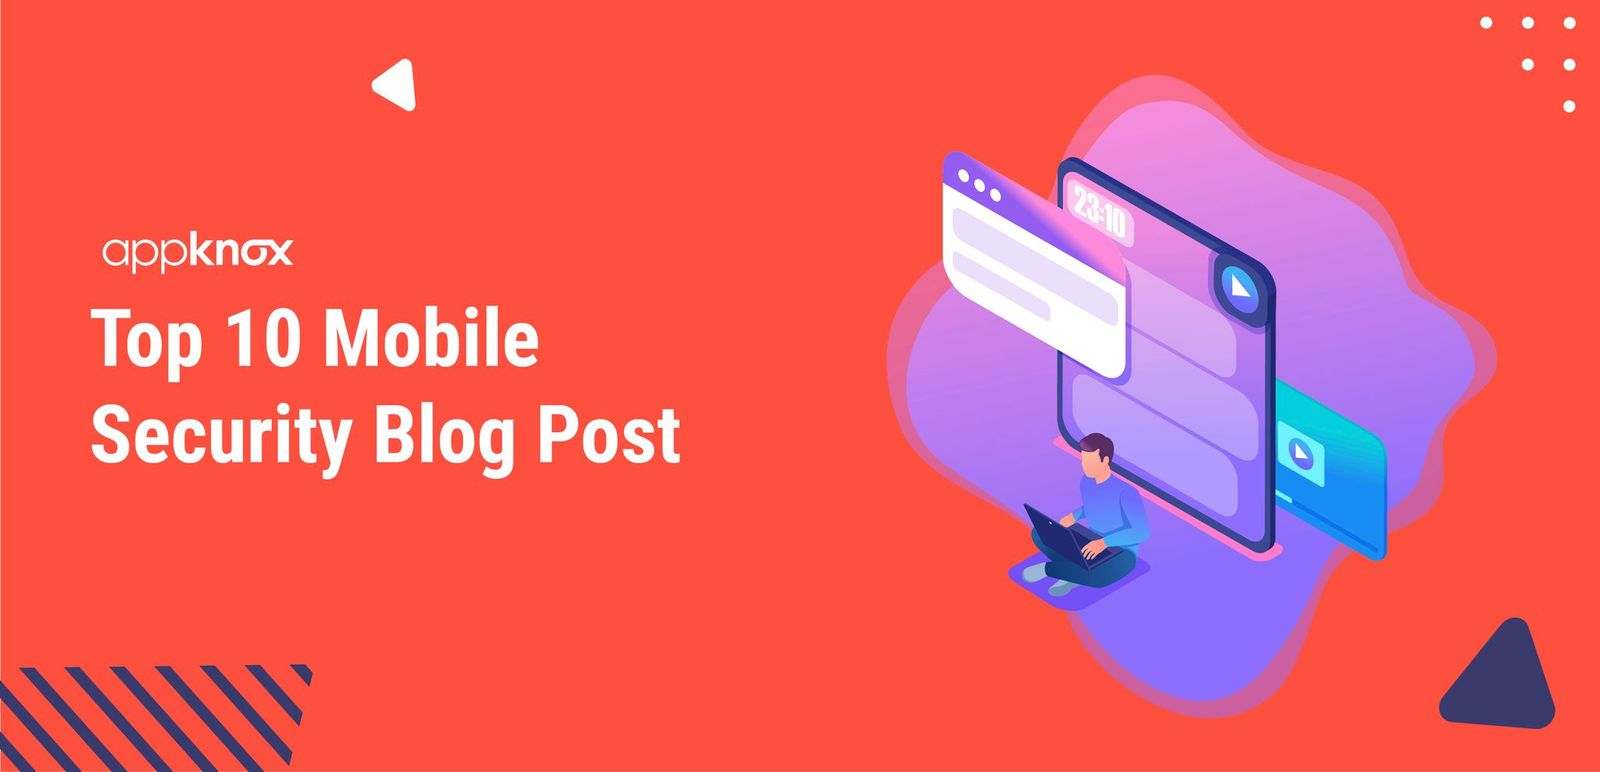 Top 10 Mobile Security Blog Post